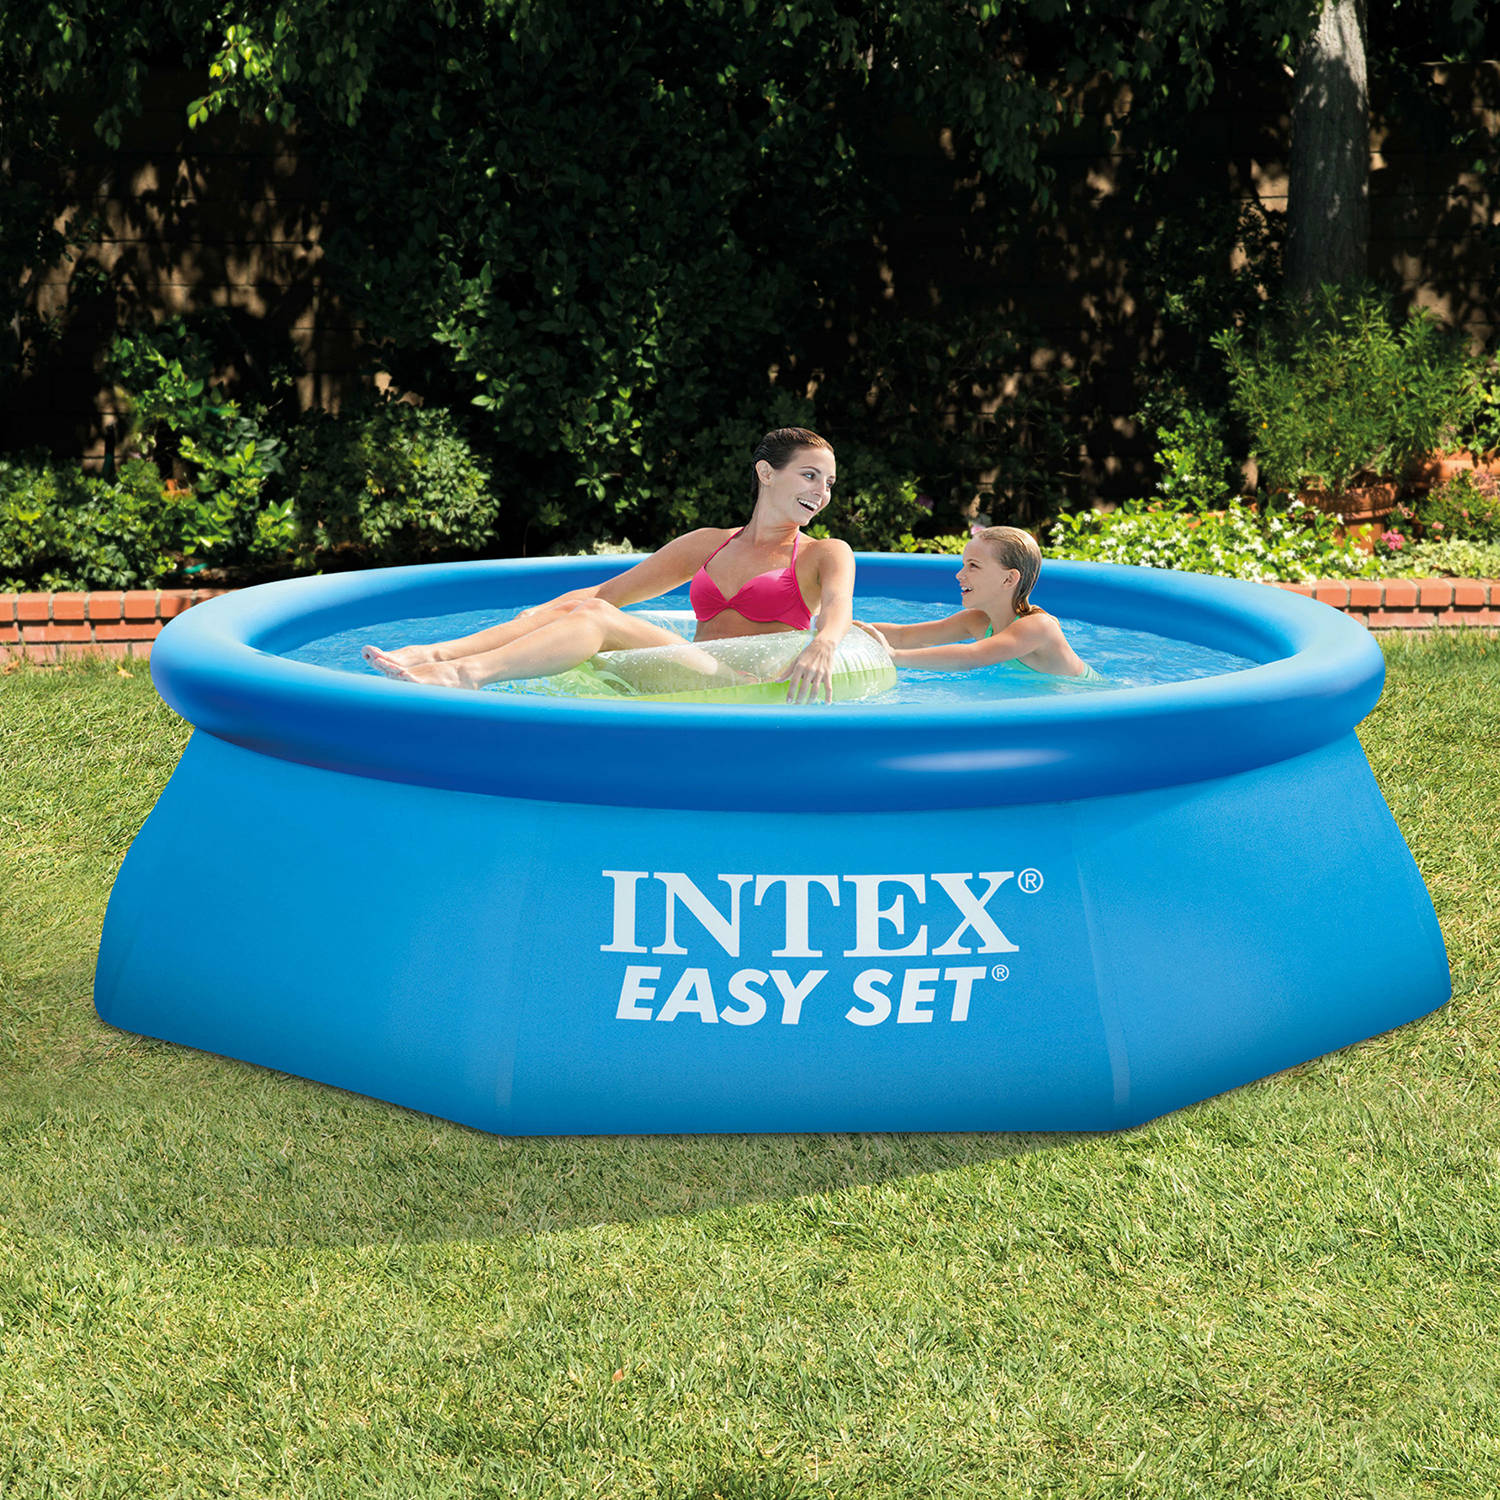 """Intex 8' x 30"""" Easy Set Above Ground Swimming Pool with Filter Pump by INTEX TRADING LTD"""